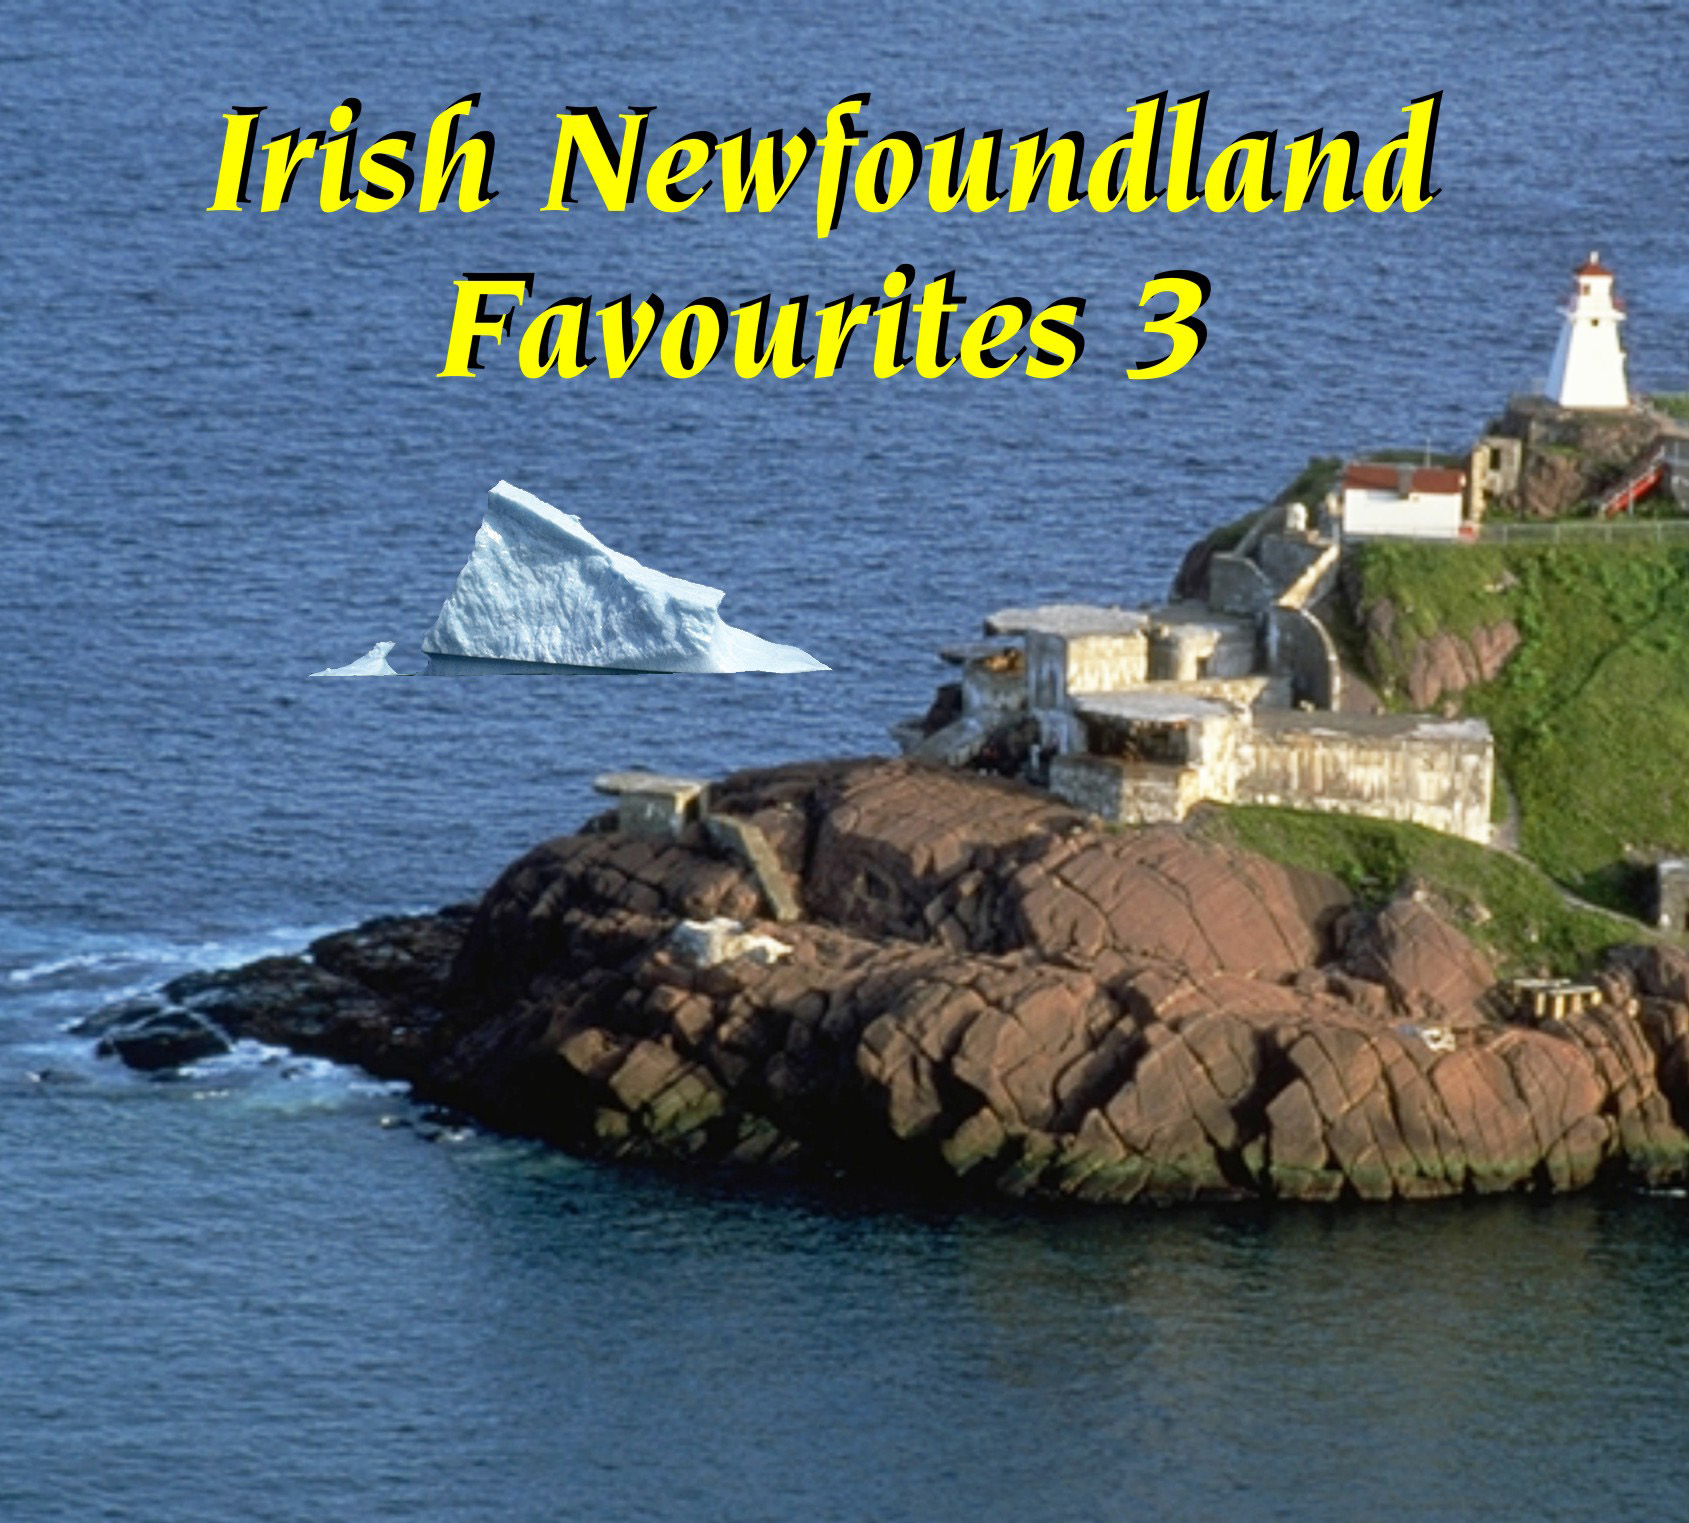 Irish Newfoundland Favourites Vol 3